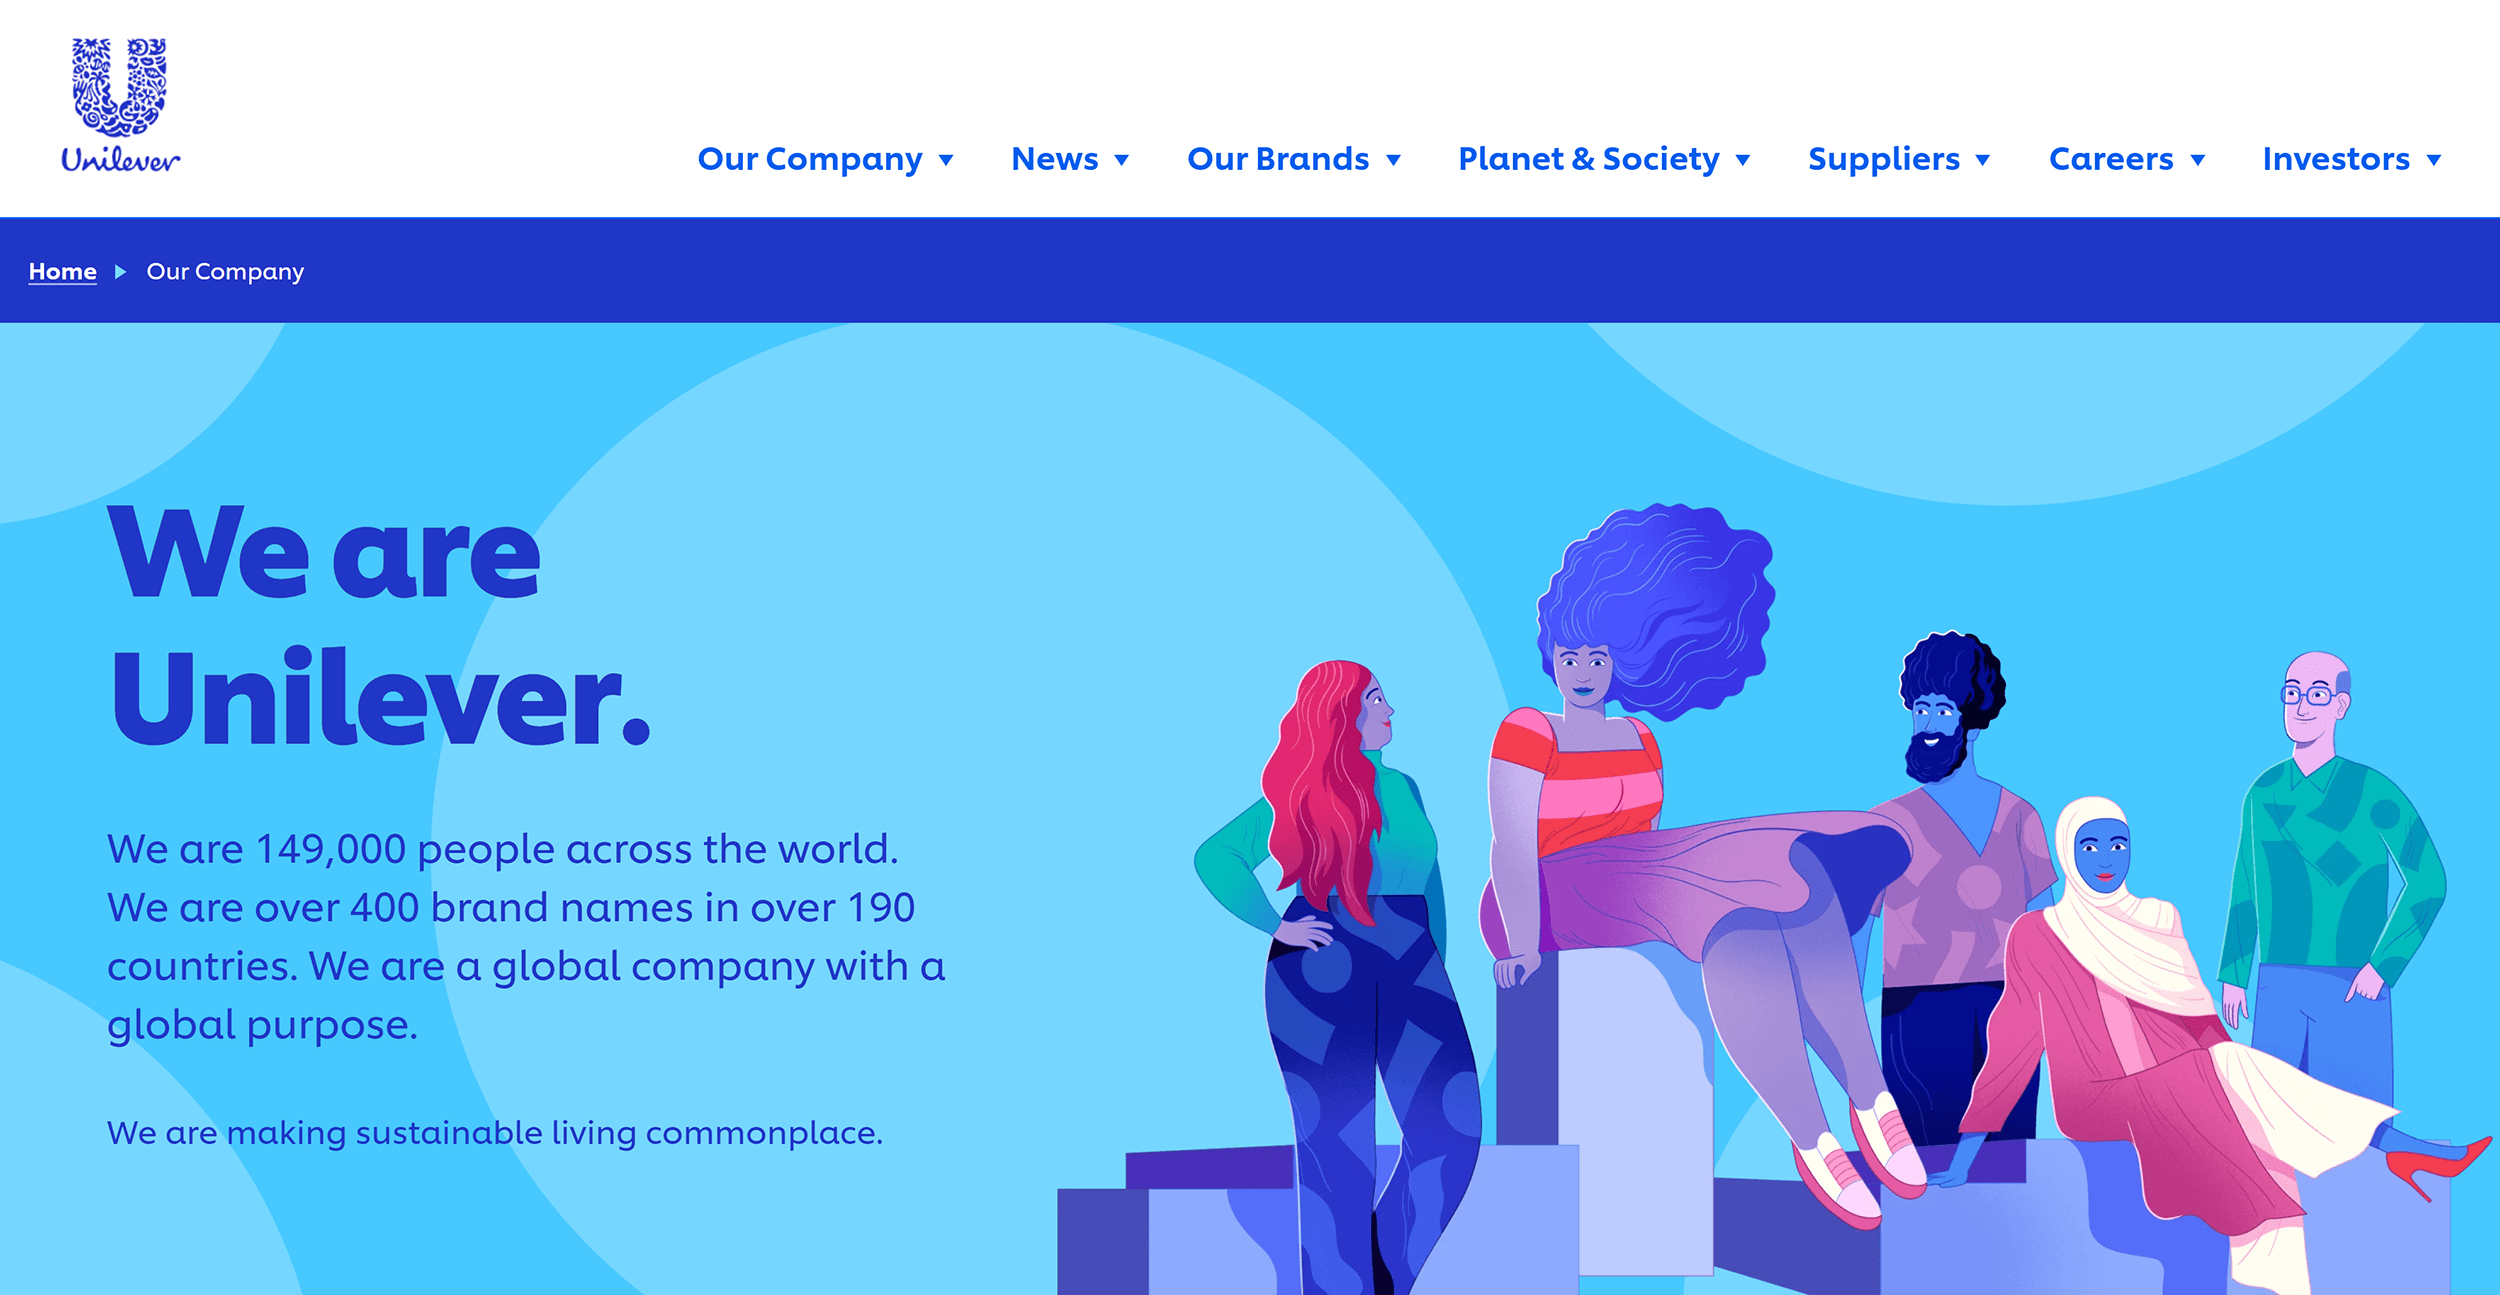 unilever-our-company-min.png